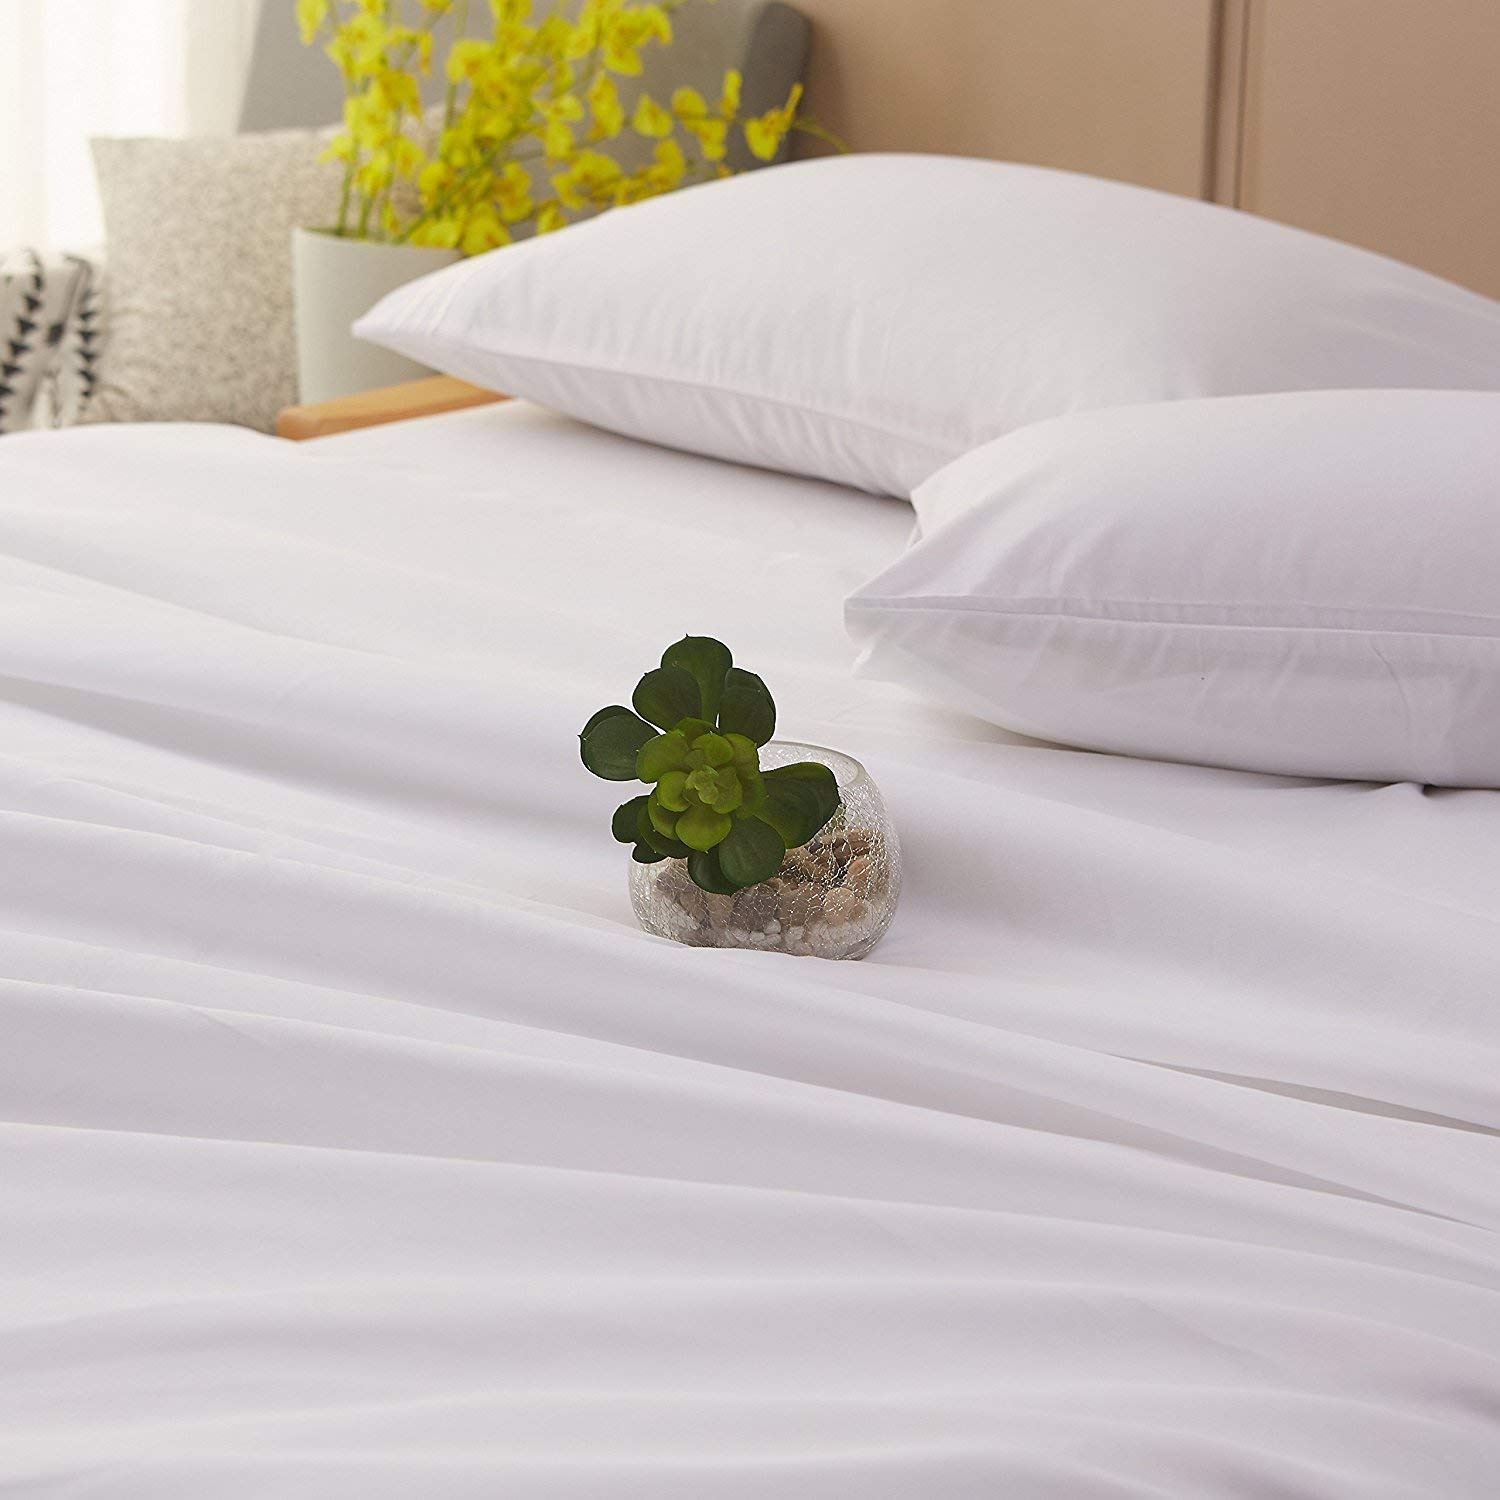 Image of Minor Monkey's Egyptian Cotton 1000 Thread Count Sheet Set - Best 1000 Thread Count Sheets